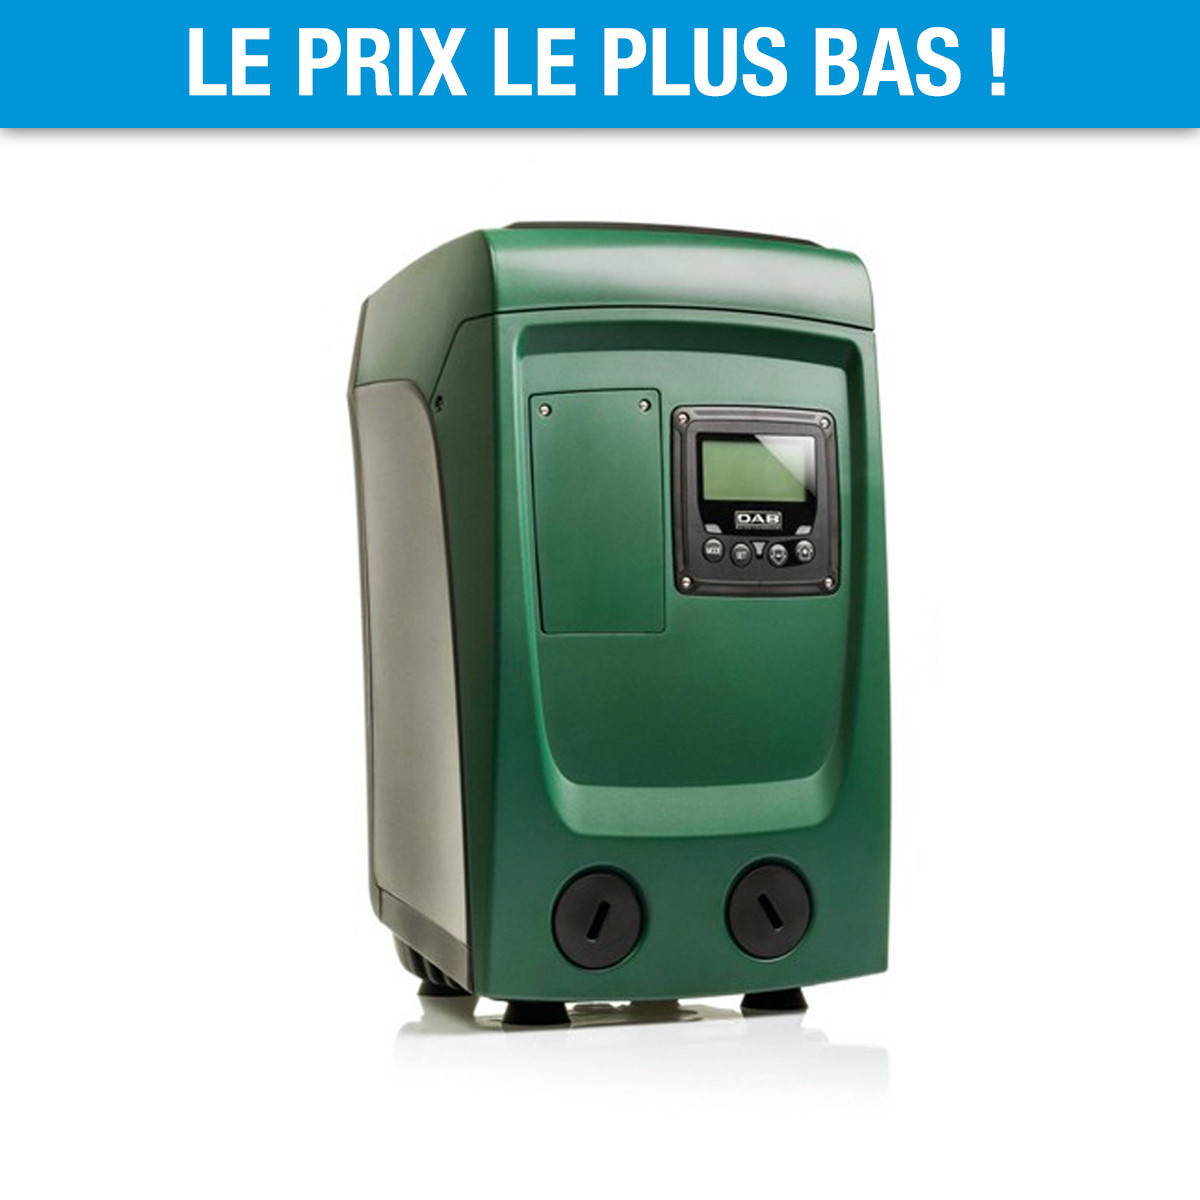 DAB E Sybox Mini Pompe surpresseur